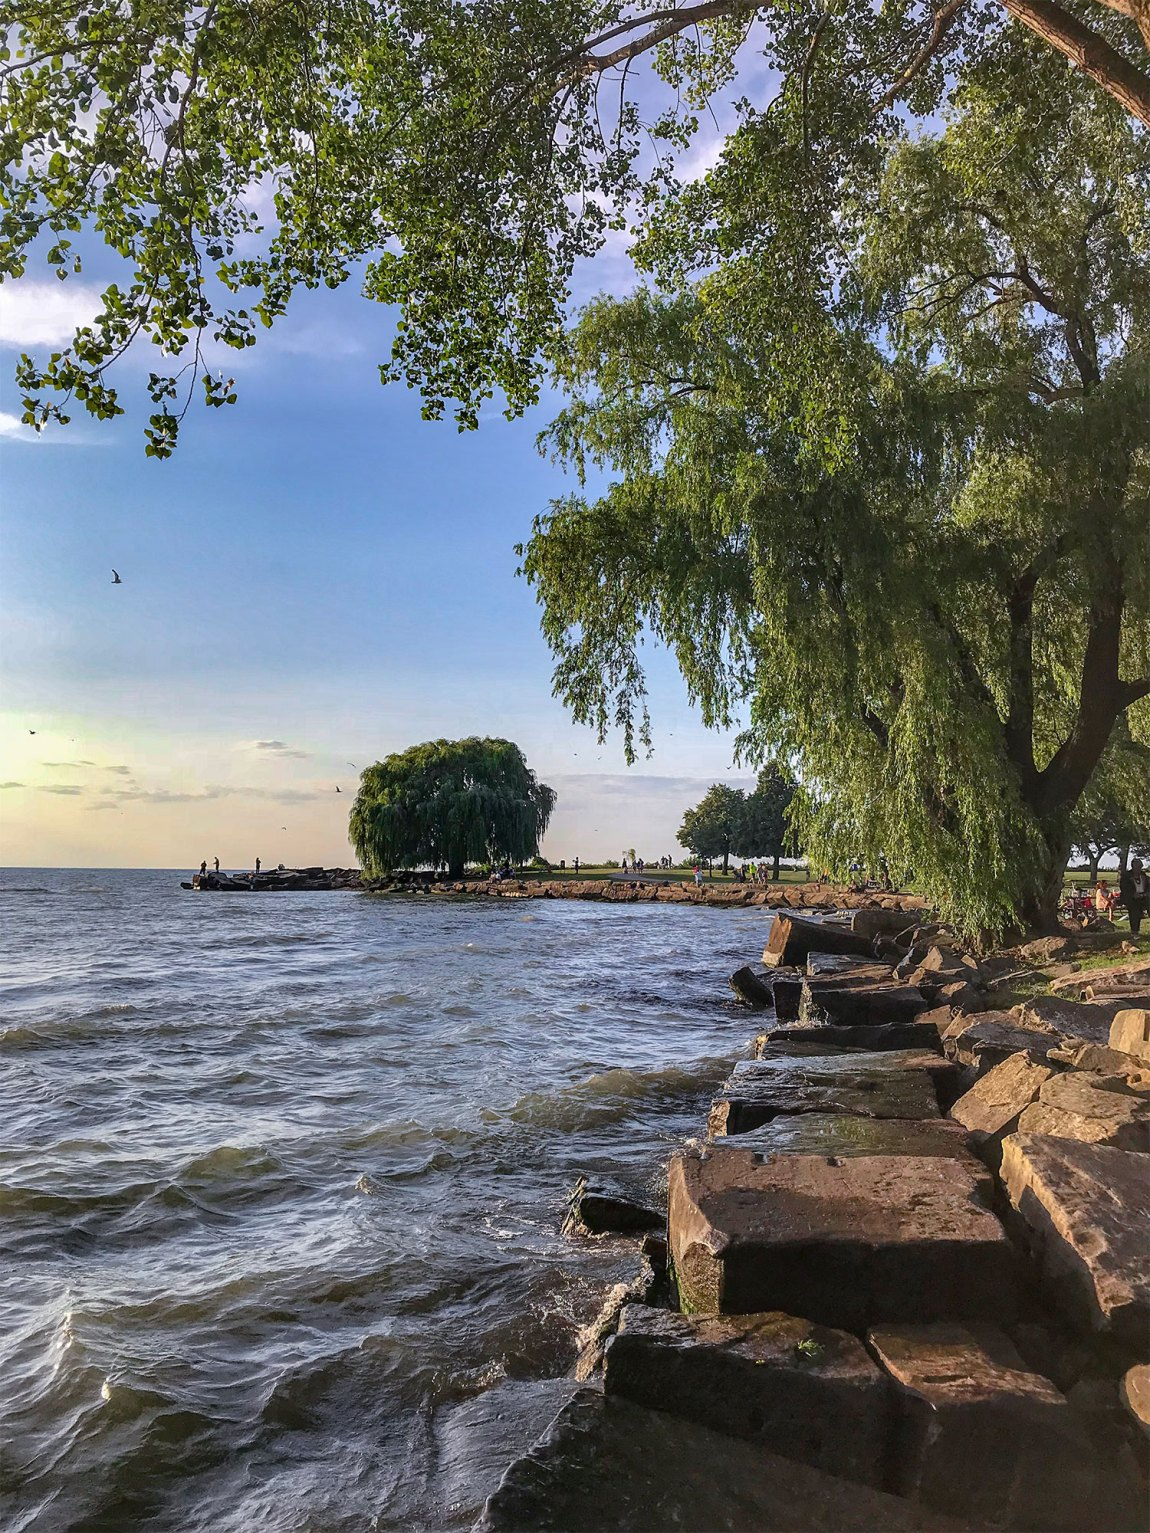 Willow Tree at Edgewater Park in Cleveland, Ohio on the shores of Lake Erie